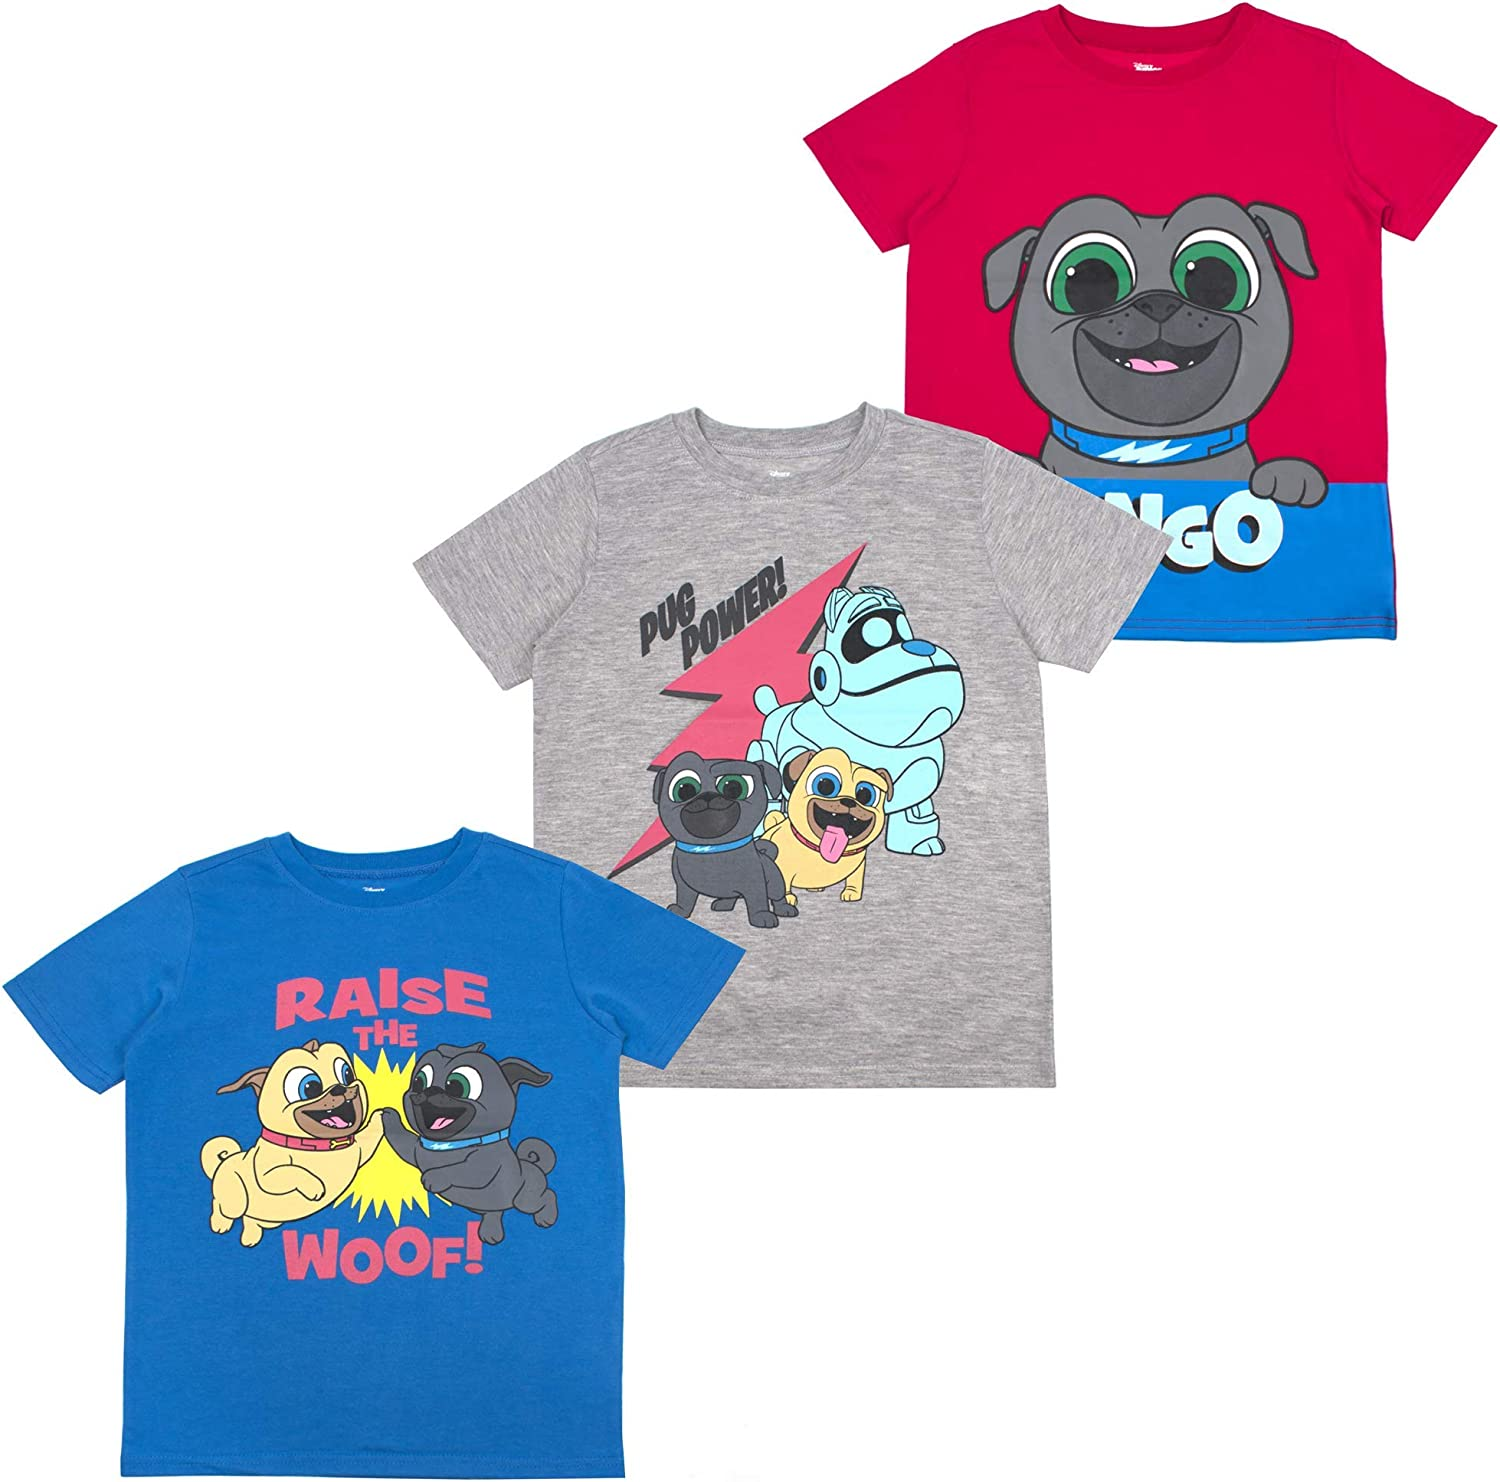 Disney Boys 3-Pack T-Shirts: Wide Variety Includes Lion King, Cars, Mickey Mouse